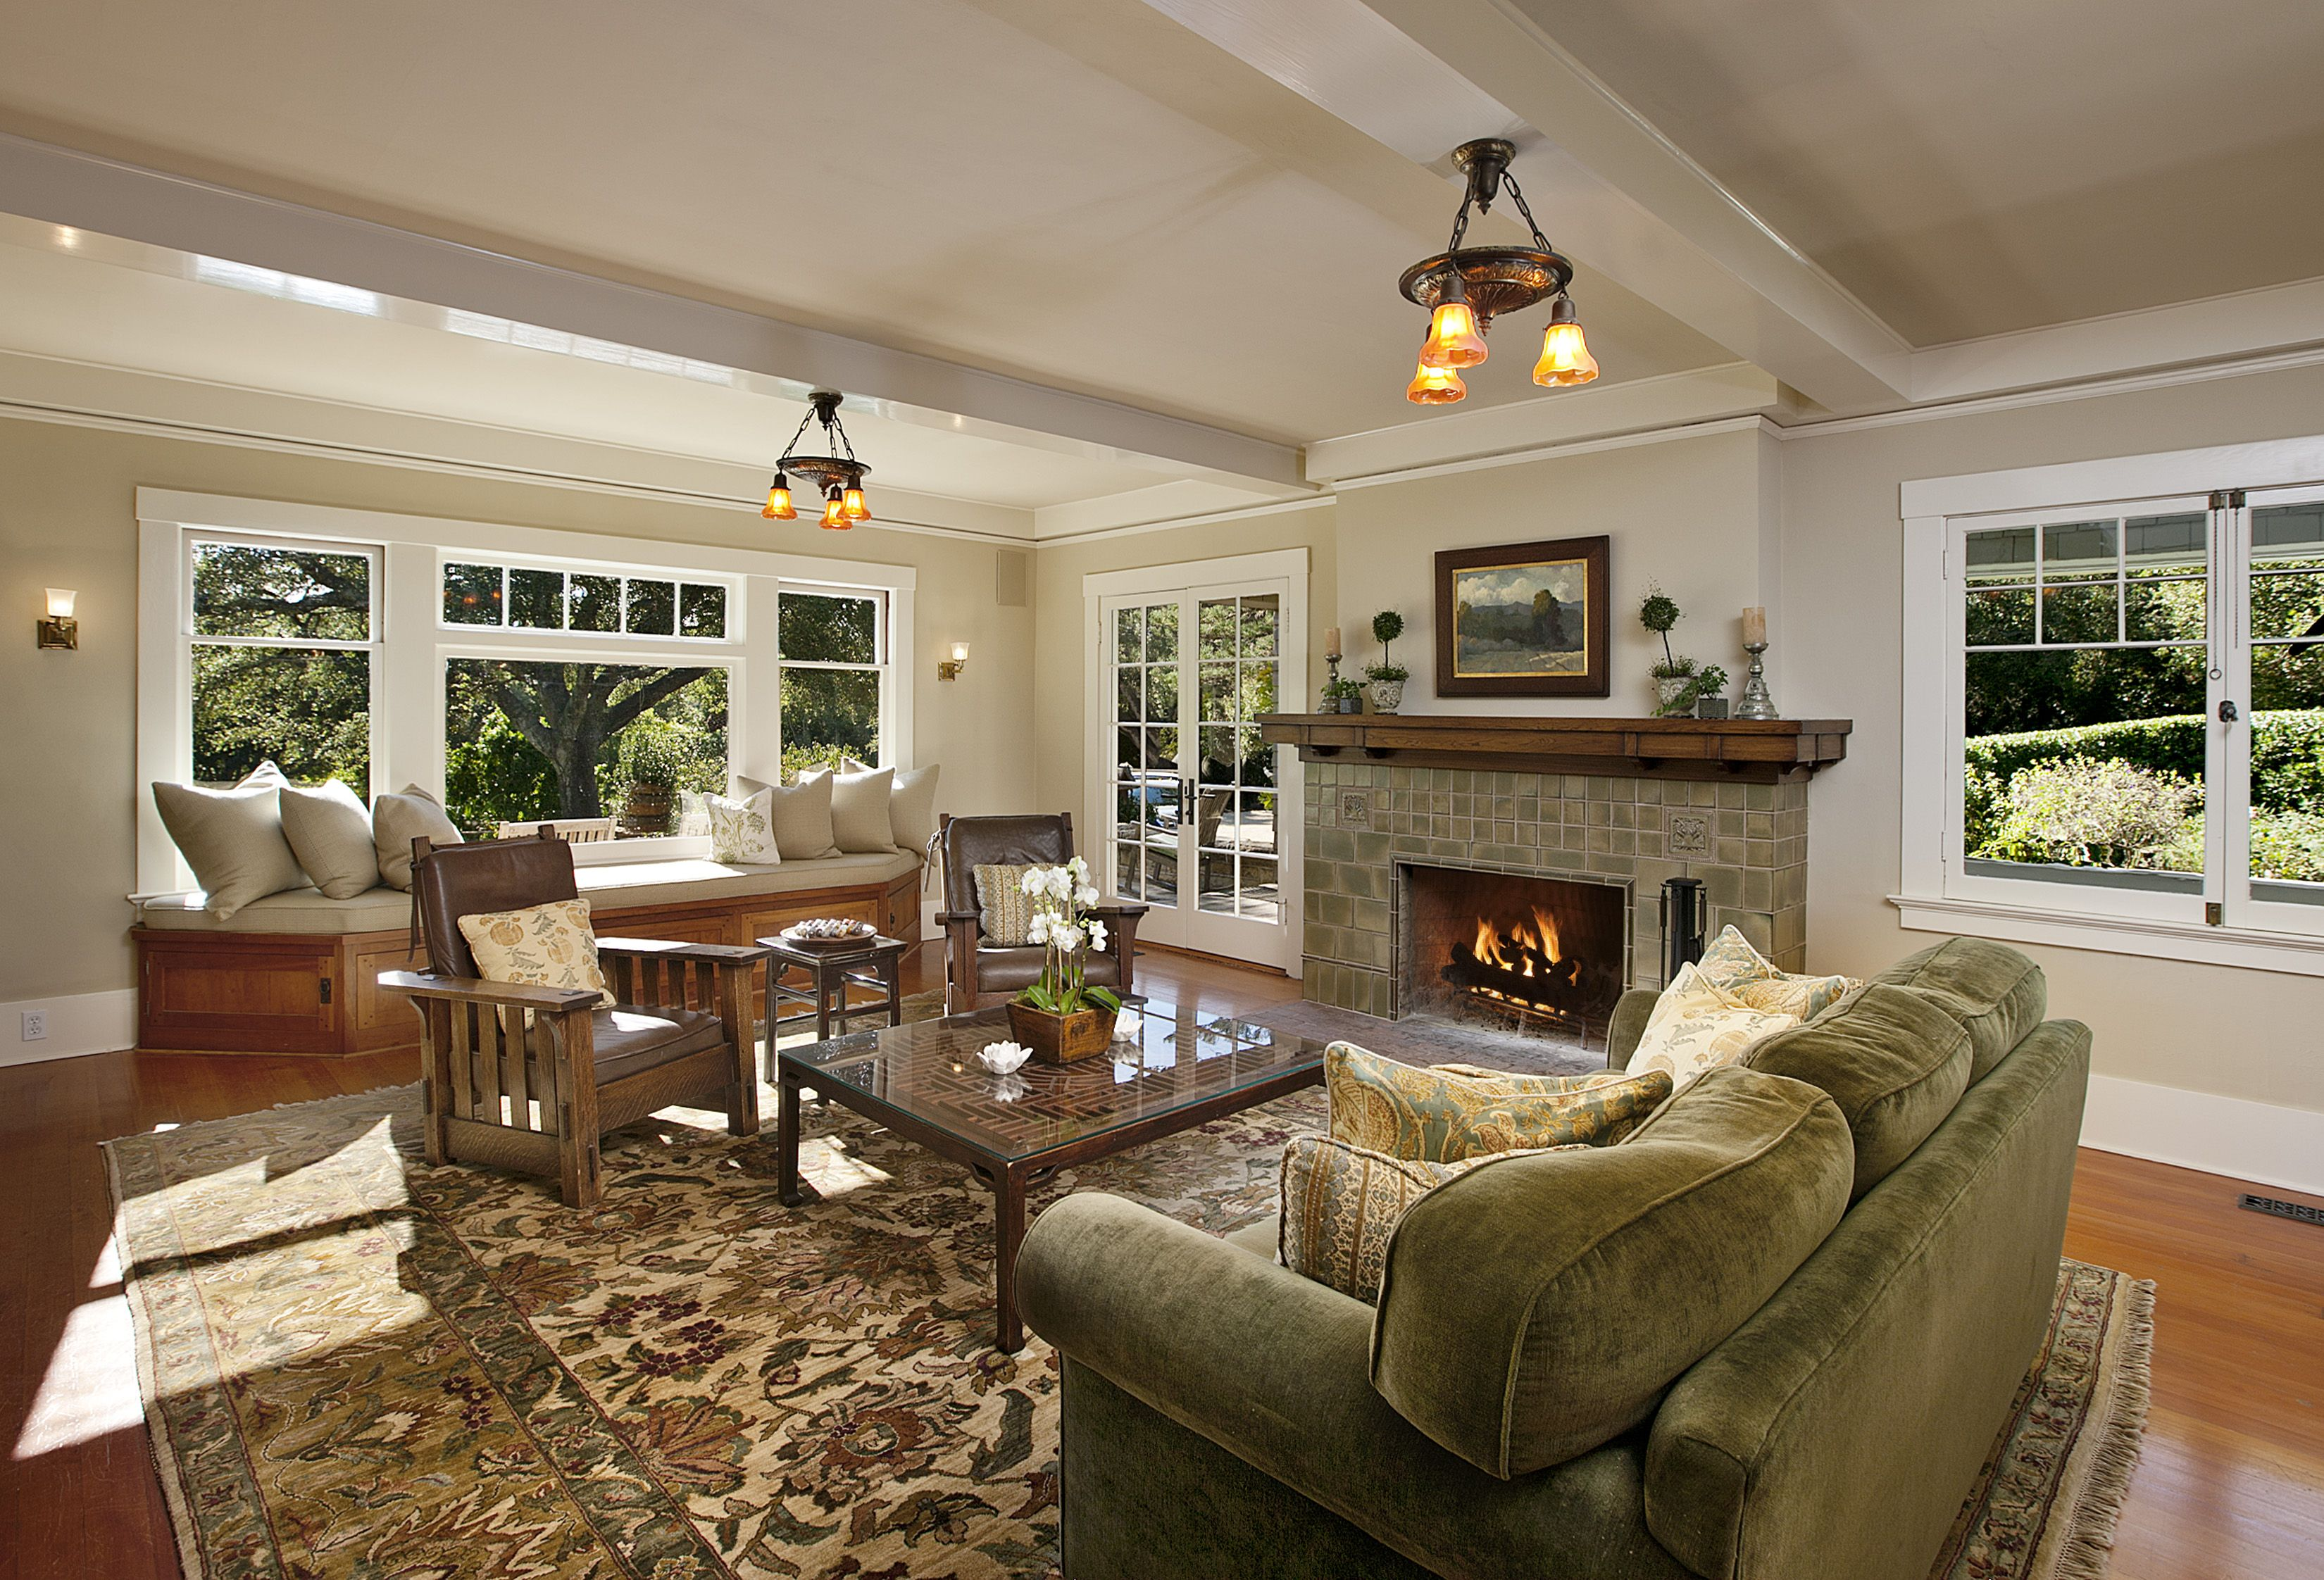 craftsman style decorating popular home styles for 2012 montecito real estate - Ranch Style Interior Design